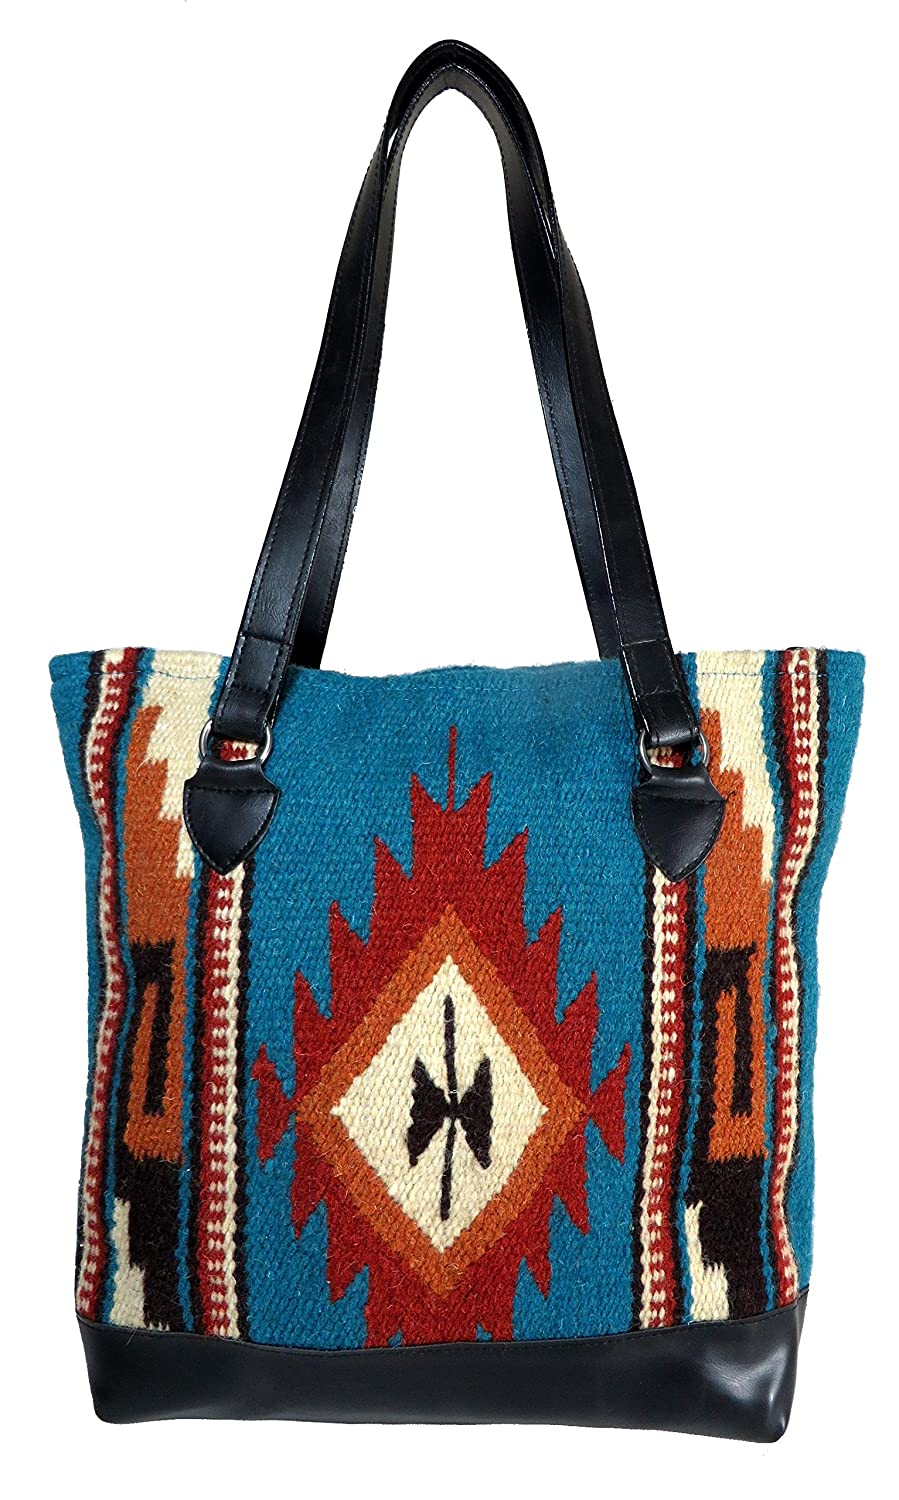 amazoncom large tote bag purse hand woven wool tote by el paso designs in western u0026 native american designs turquoise clothing - Large Tote Bags